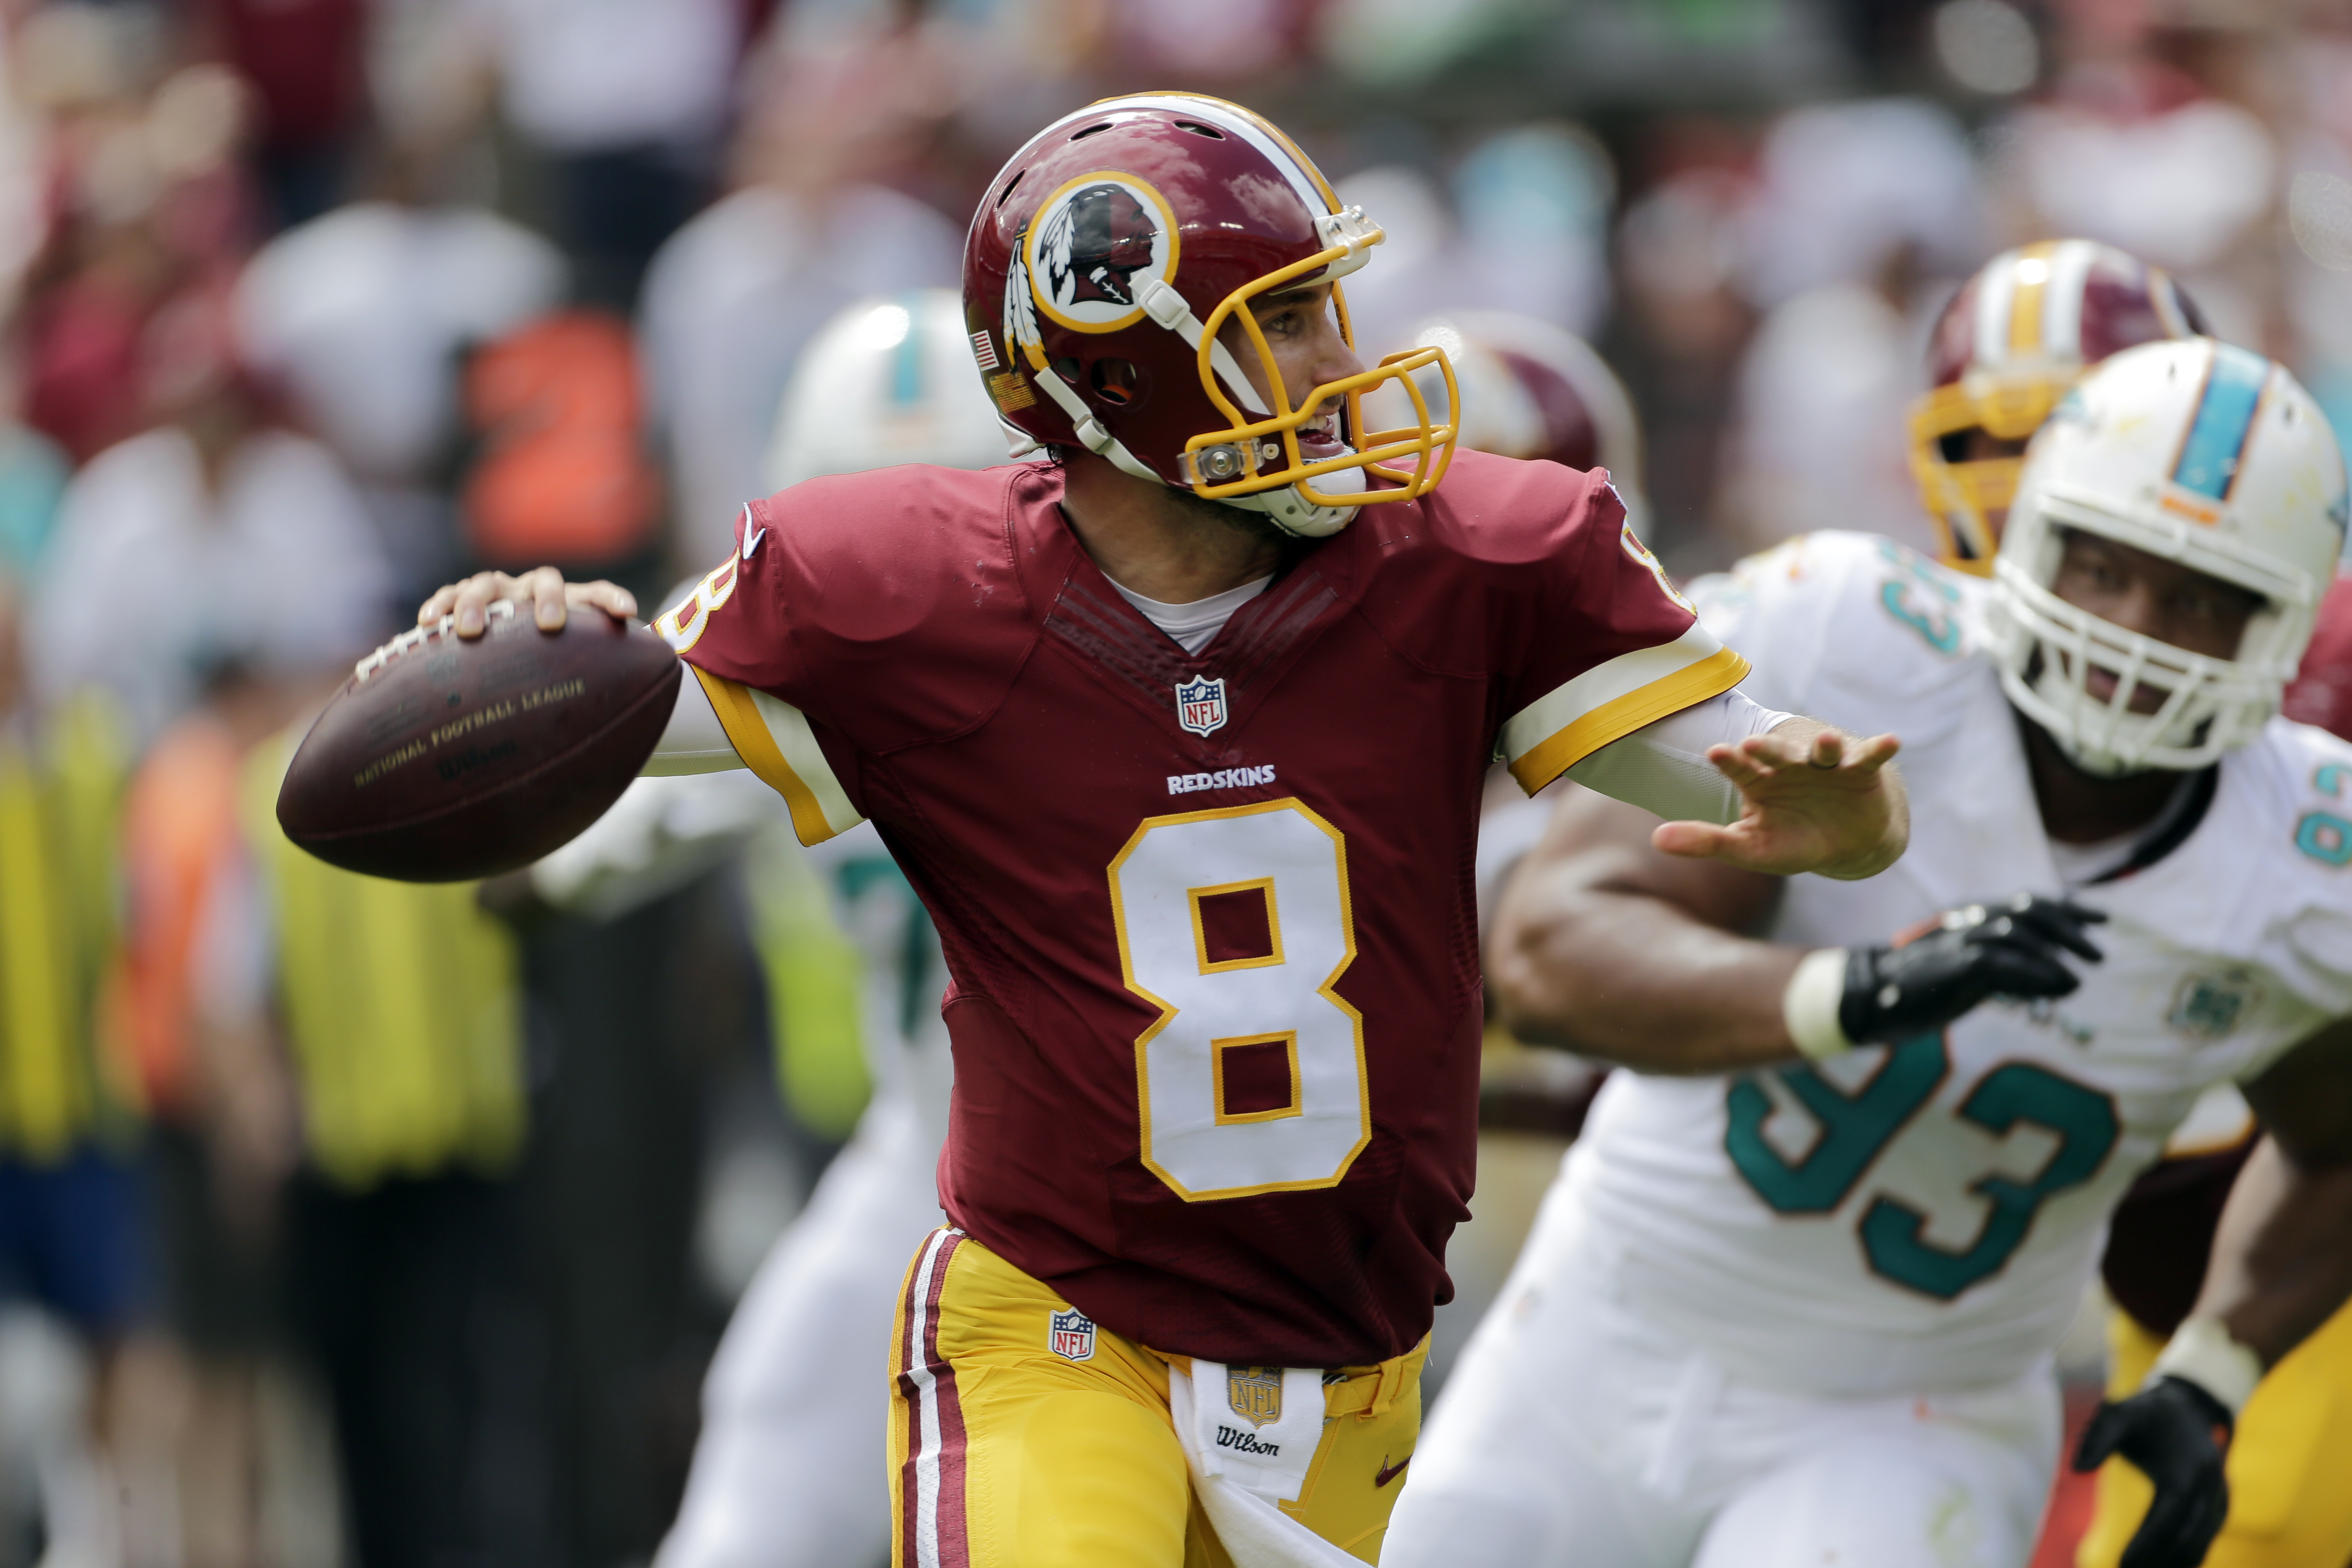 Washington Redskins quarterback Kirk Cousins (8) looks to pass as he is pursued by Miami Dolphins defensive tackle Ndamukong Suh (93) during the first half of an NFL football game Sunday, Sept. 13, 2015, in Landover, Md. (AP Photo/Mark Tenally)